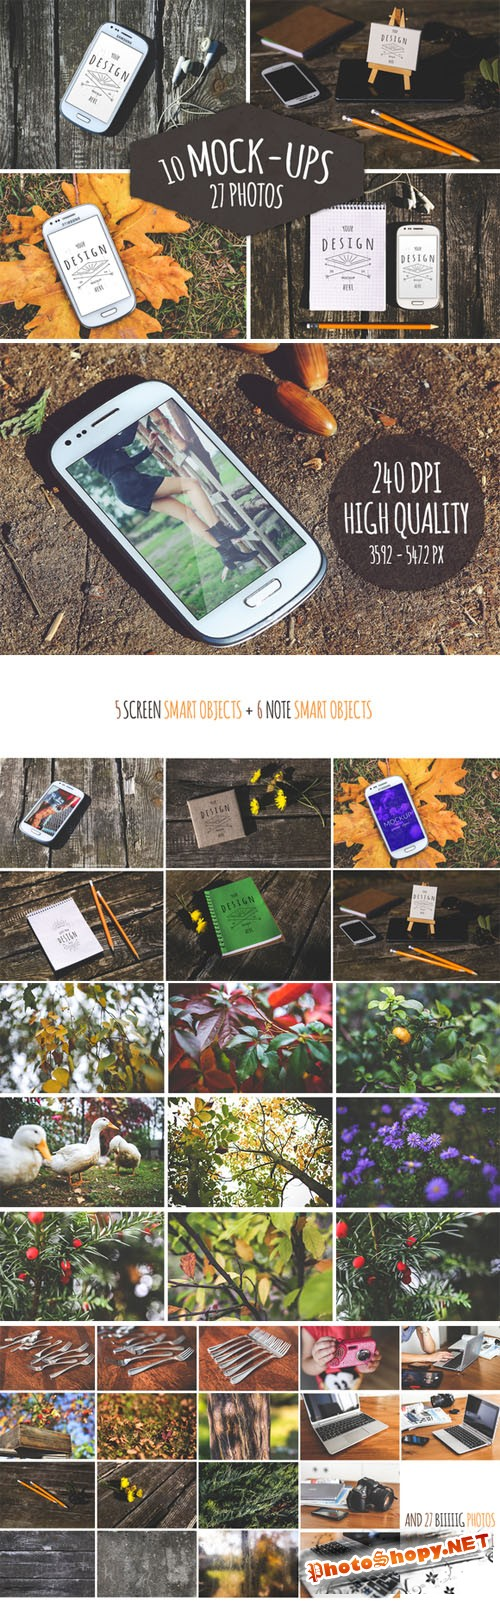 CreativeMarket - 37 Pieces - 10 Mock-Ups & 27 Photos